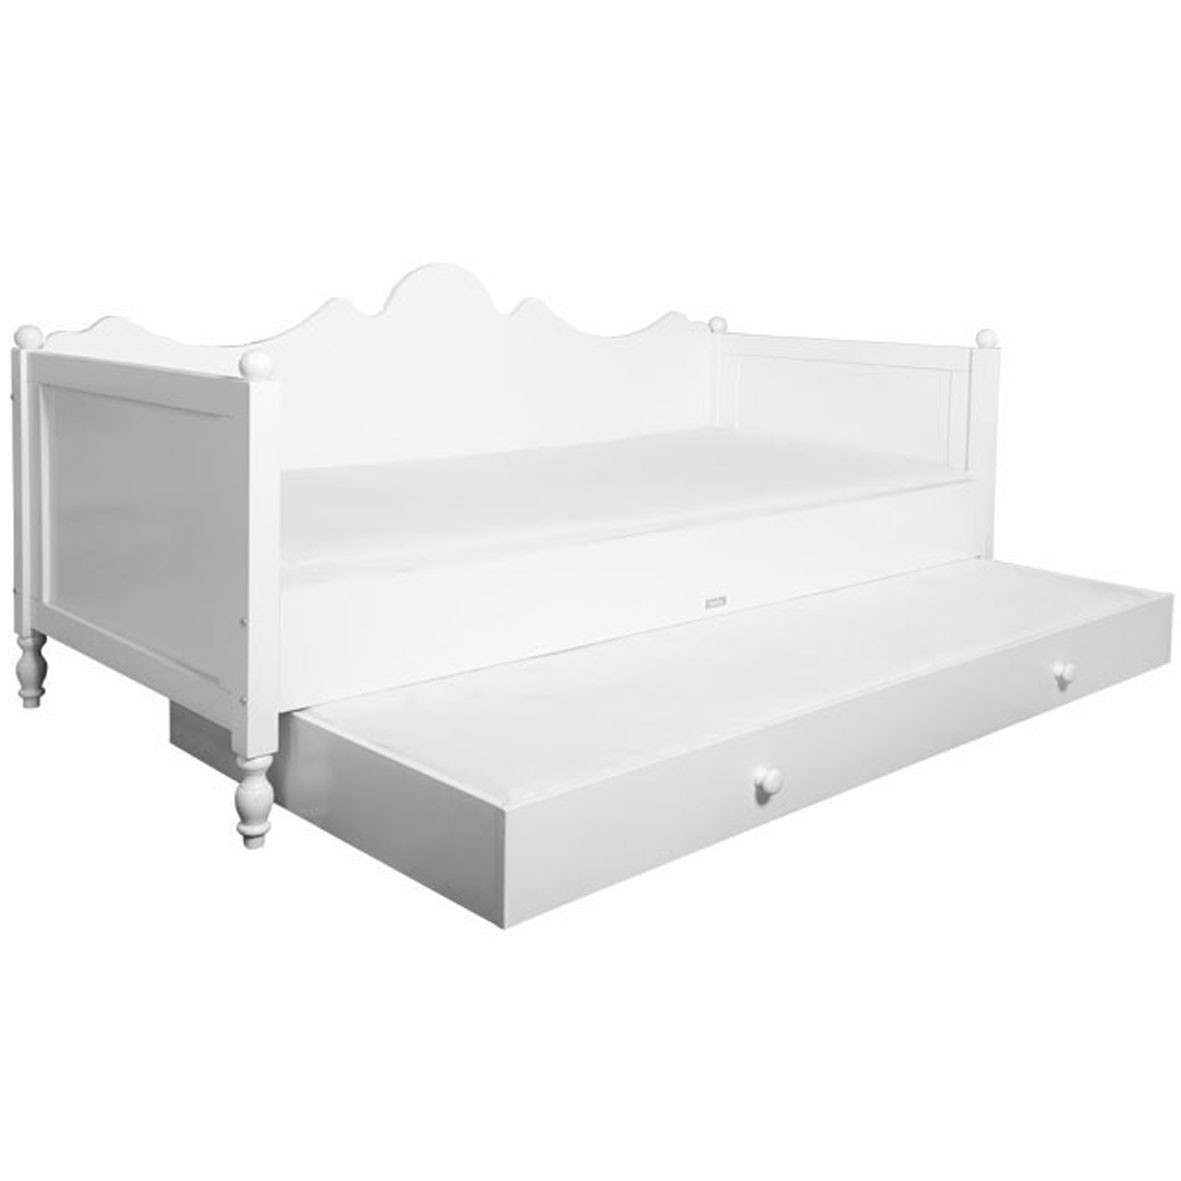 Belle white bench bed by bopita mylittleroom - Banquette lit mousse ...